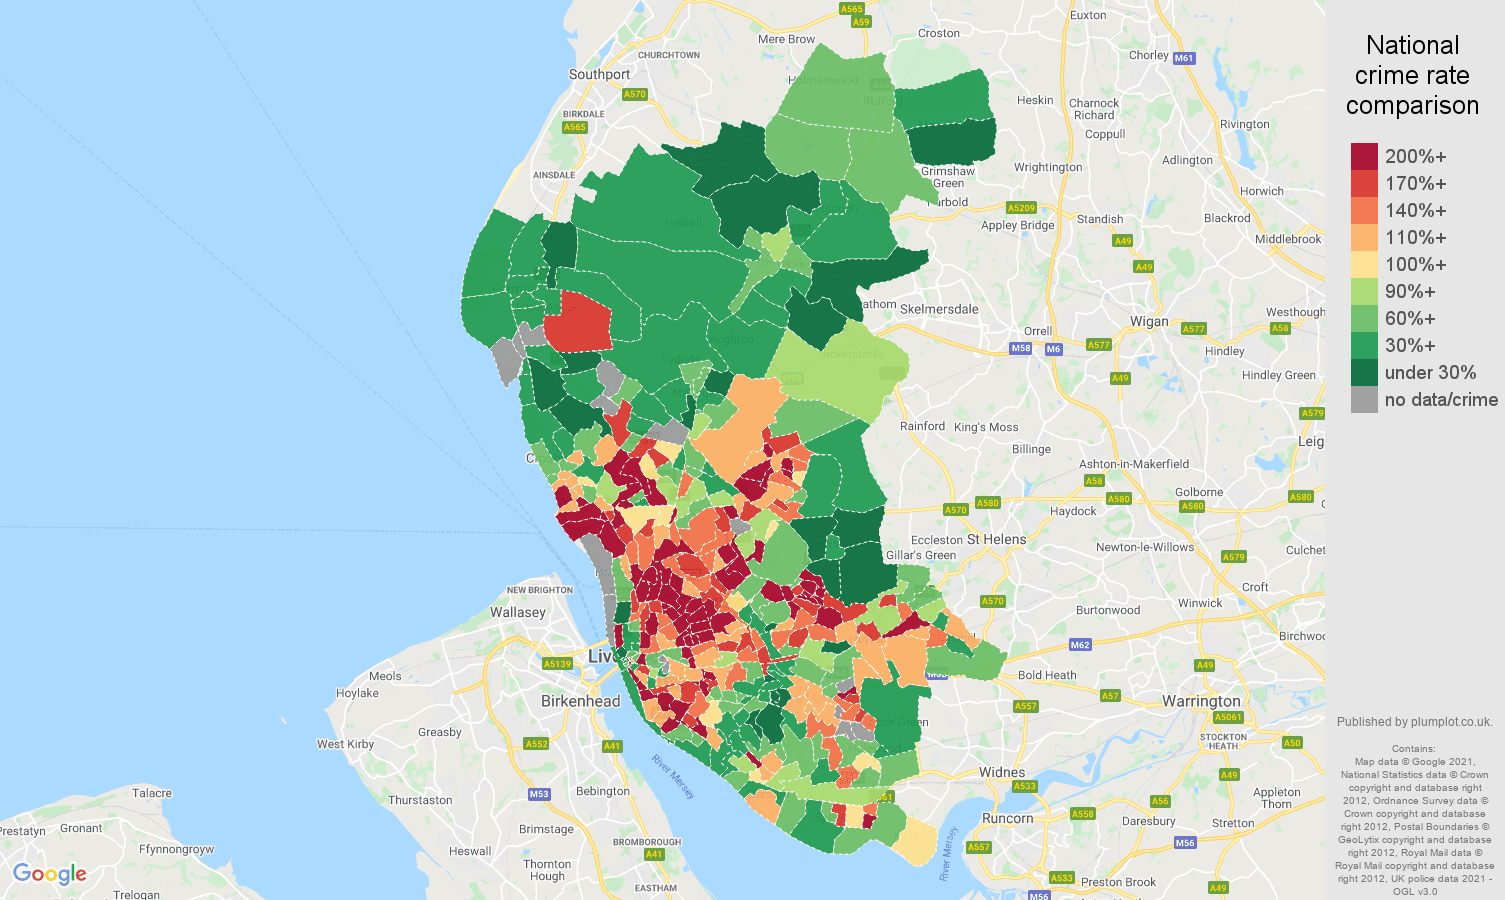 Liverpool violent crime rate comparison map